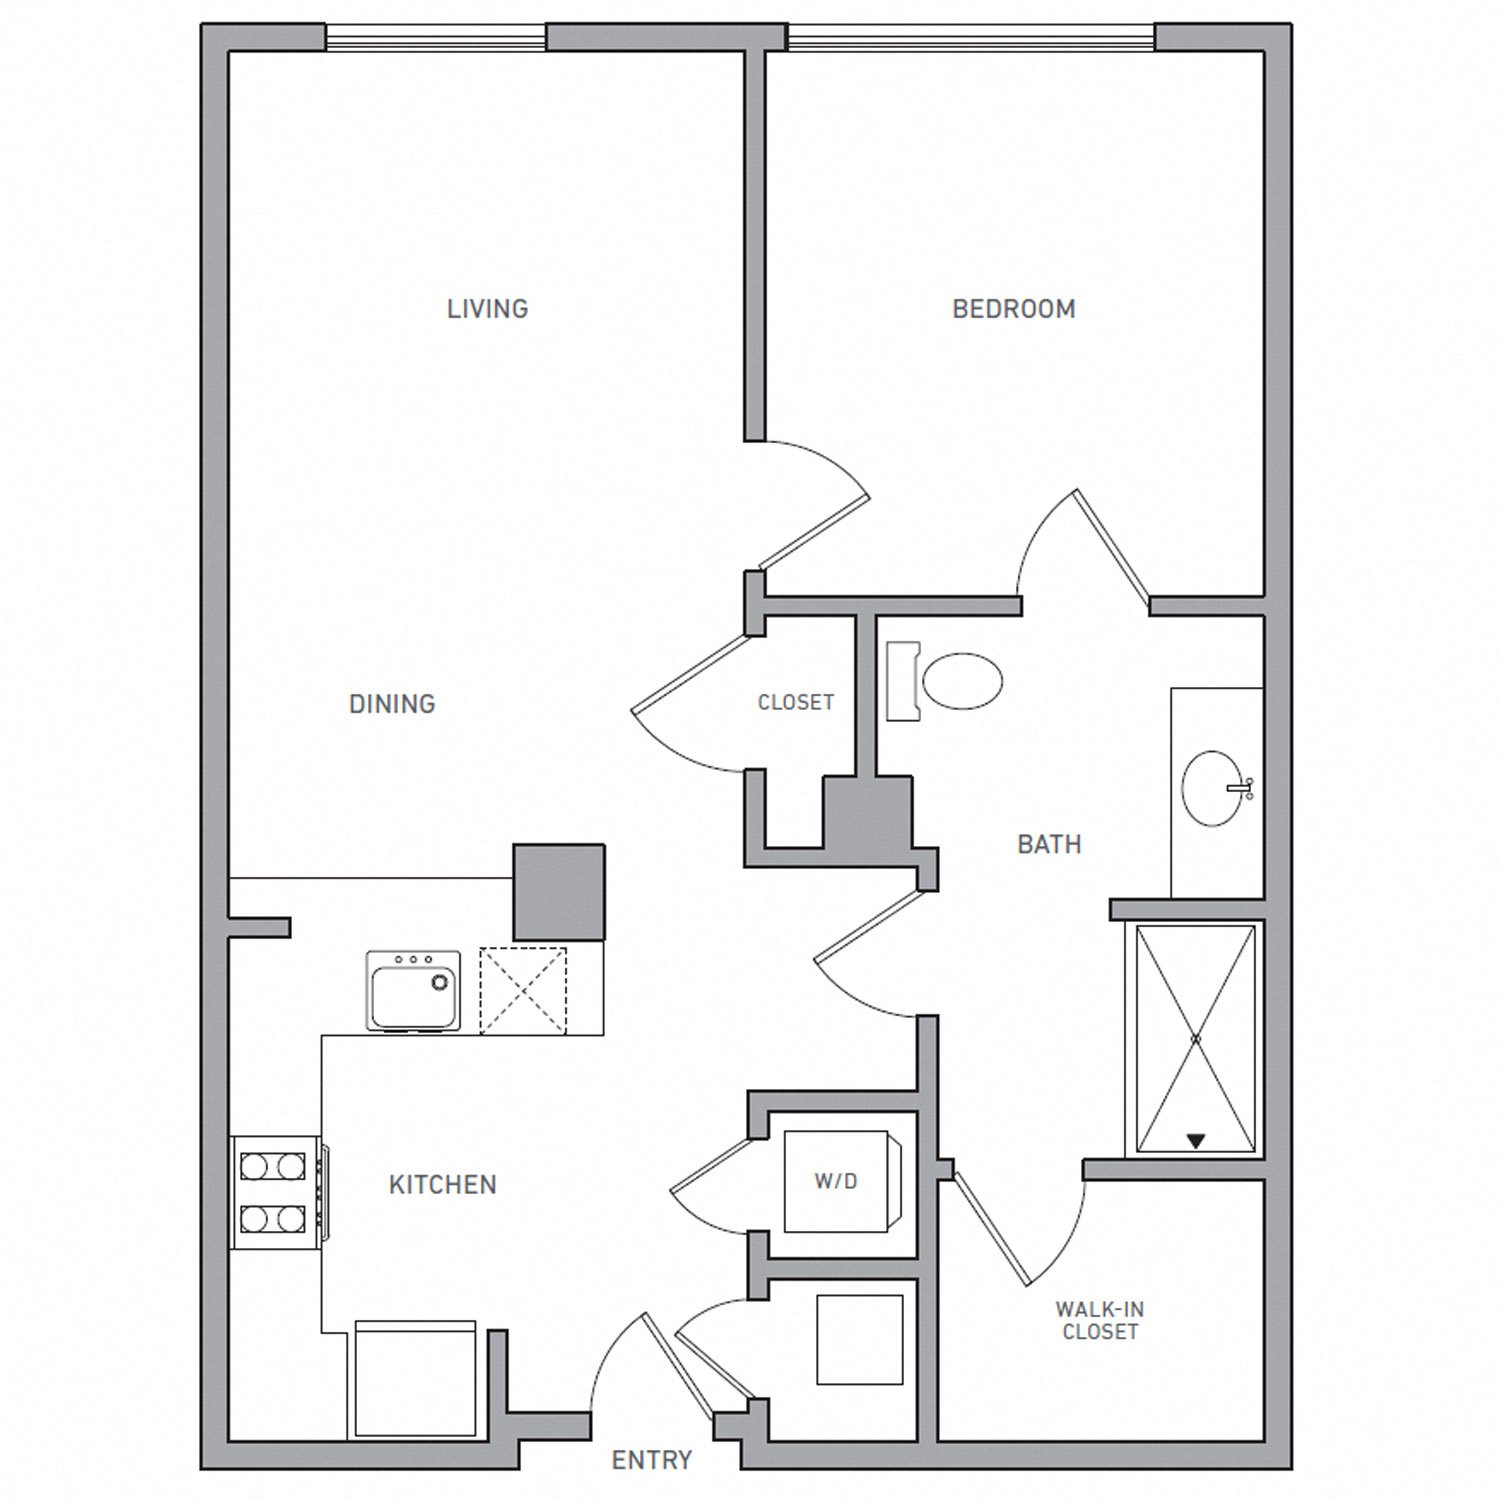 A Six D floor plan diagram. One bedroom, one bathroom, an open kitchen and living area, and a washer dryer.